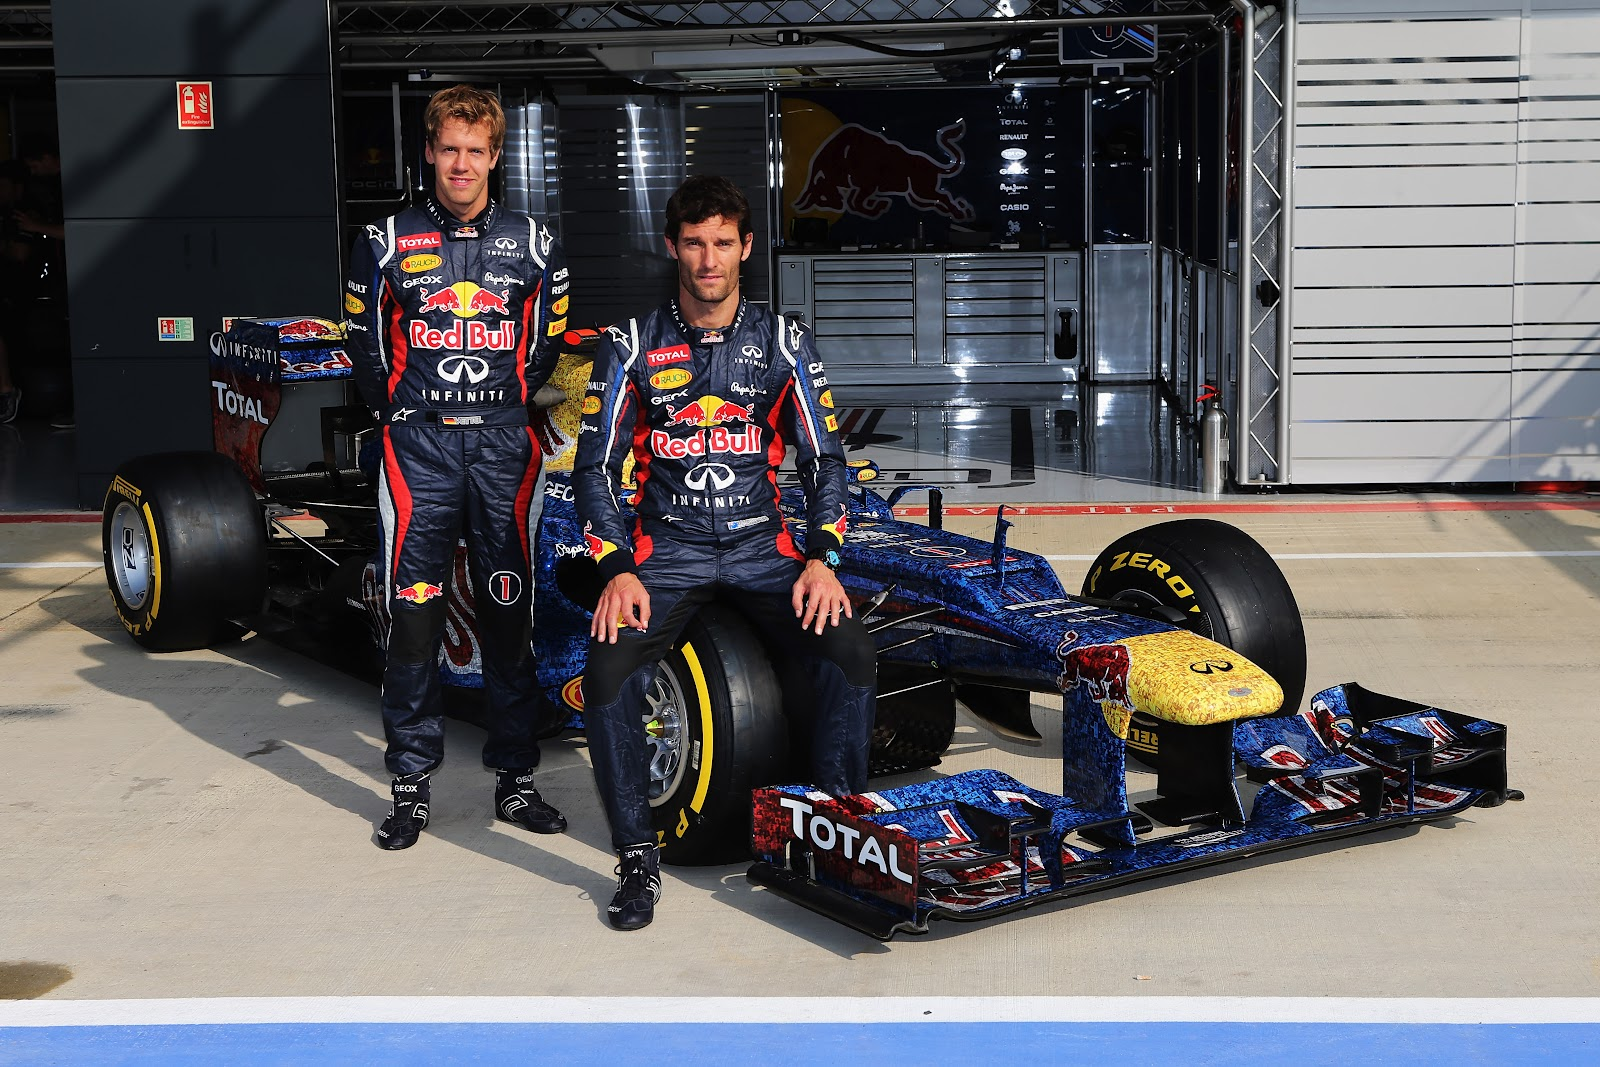 red bull contribution margin The contribution margin is the difference between a company's total sales revenue and variable costs in units this margin can be displayed on the income statement.